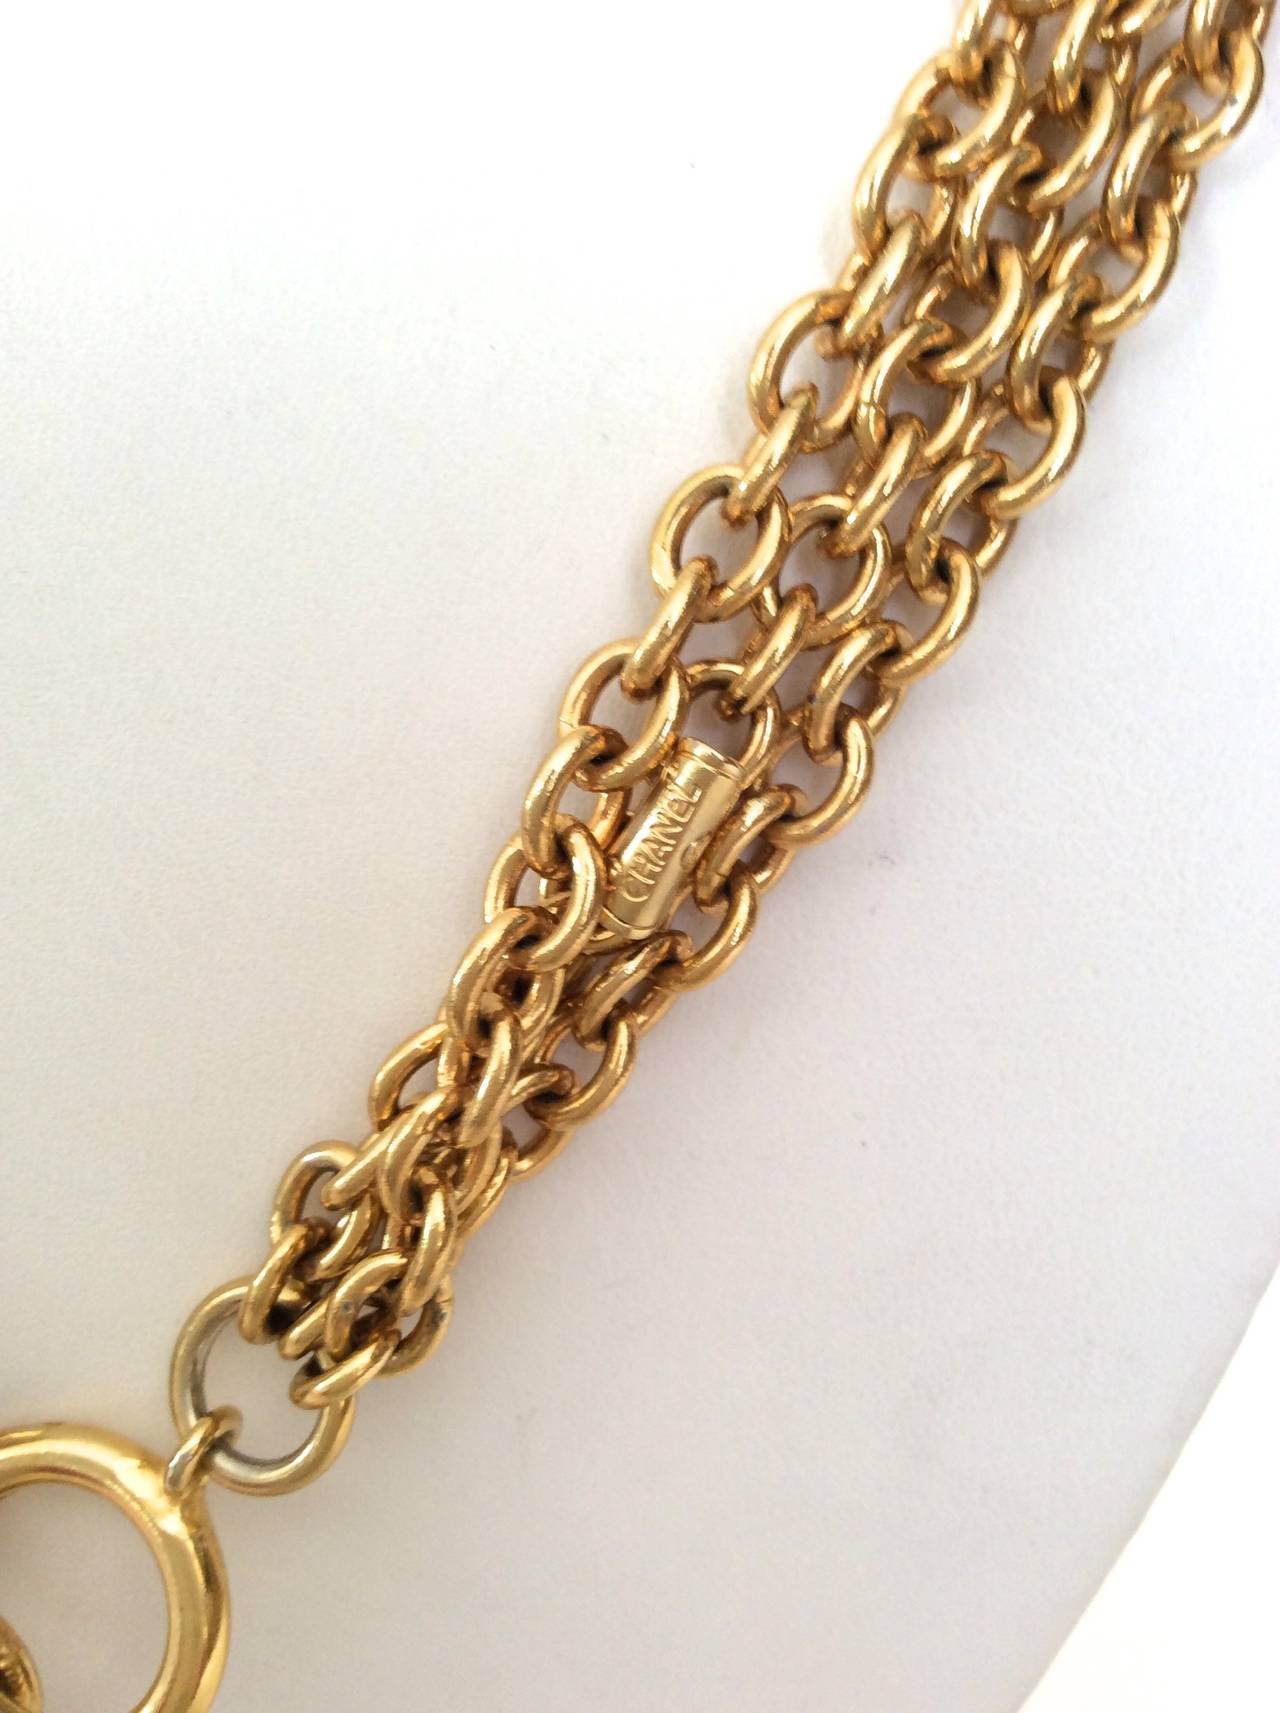 Gold Tone Chanel Triple Chain Necklace with Iconic Purse Pendant 6